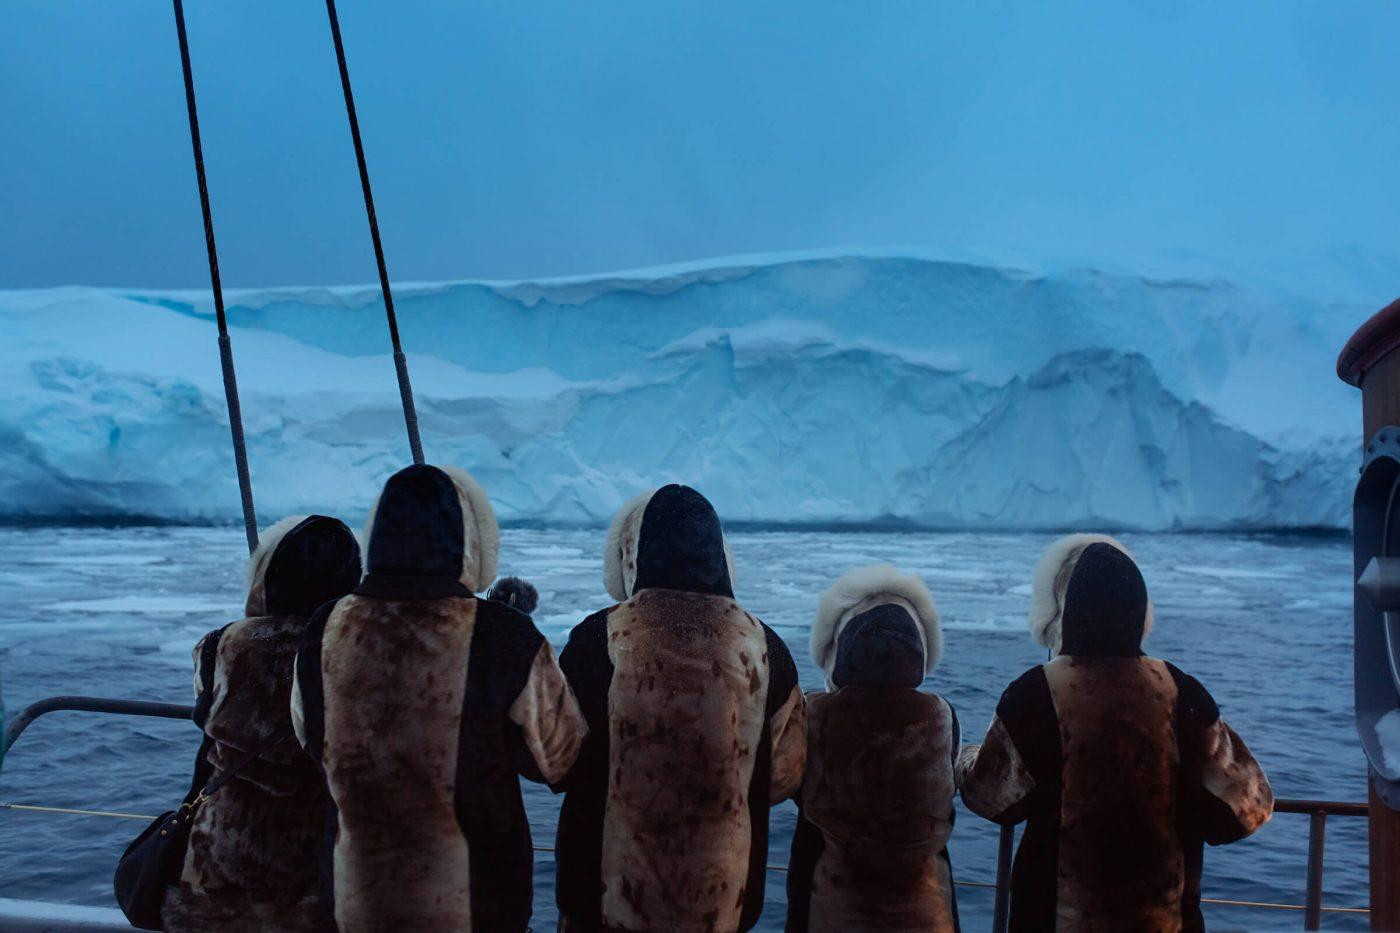 A group of seal skin dressed tourists enjoying the Ilulissat icefjord during blue hour in Greenland. Photo by Rebecca Gustafsson - Visit Greenland